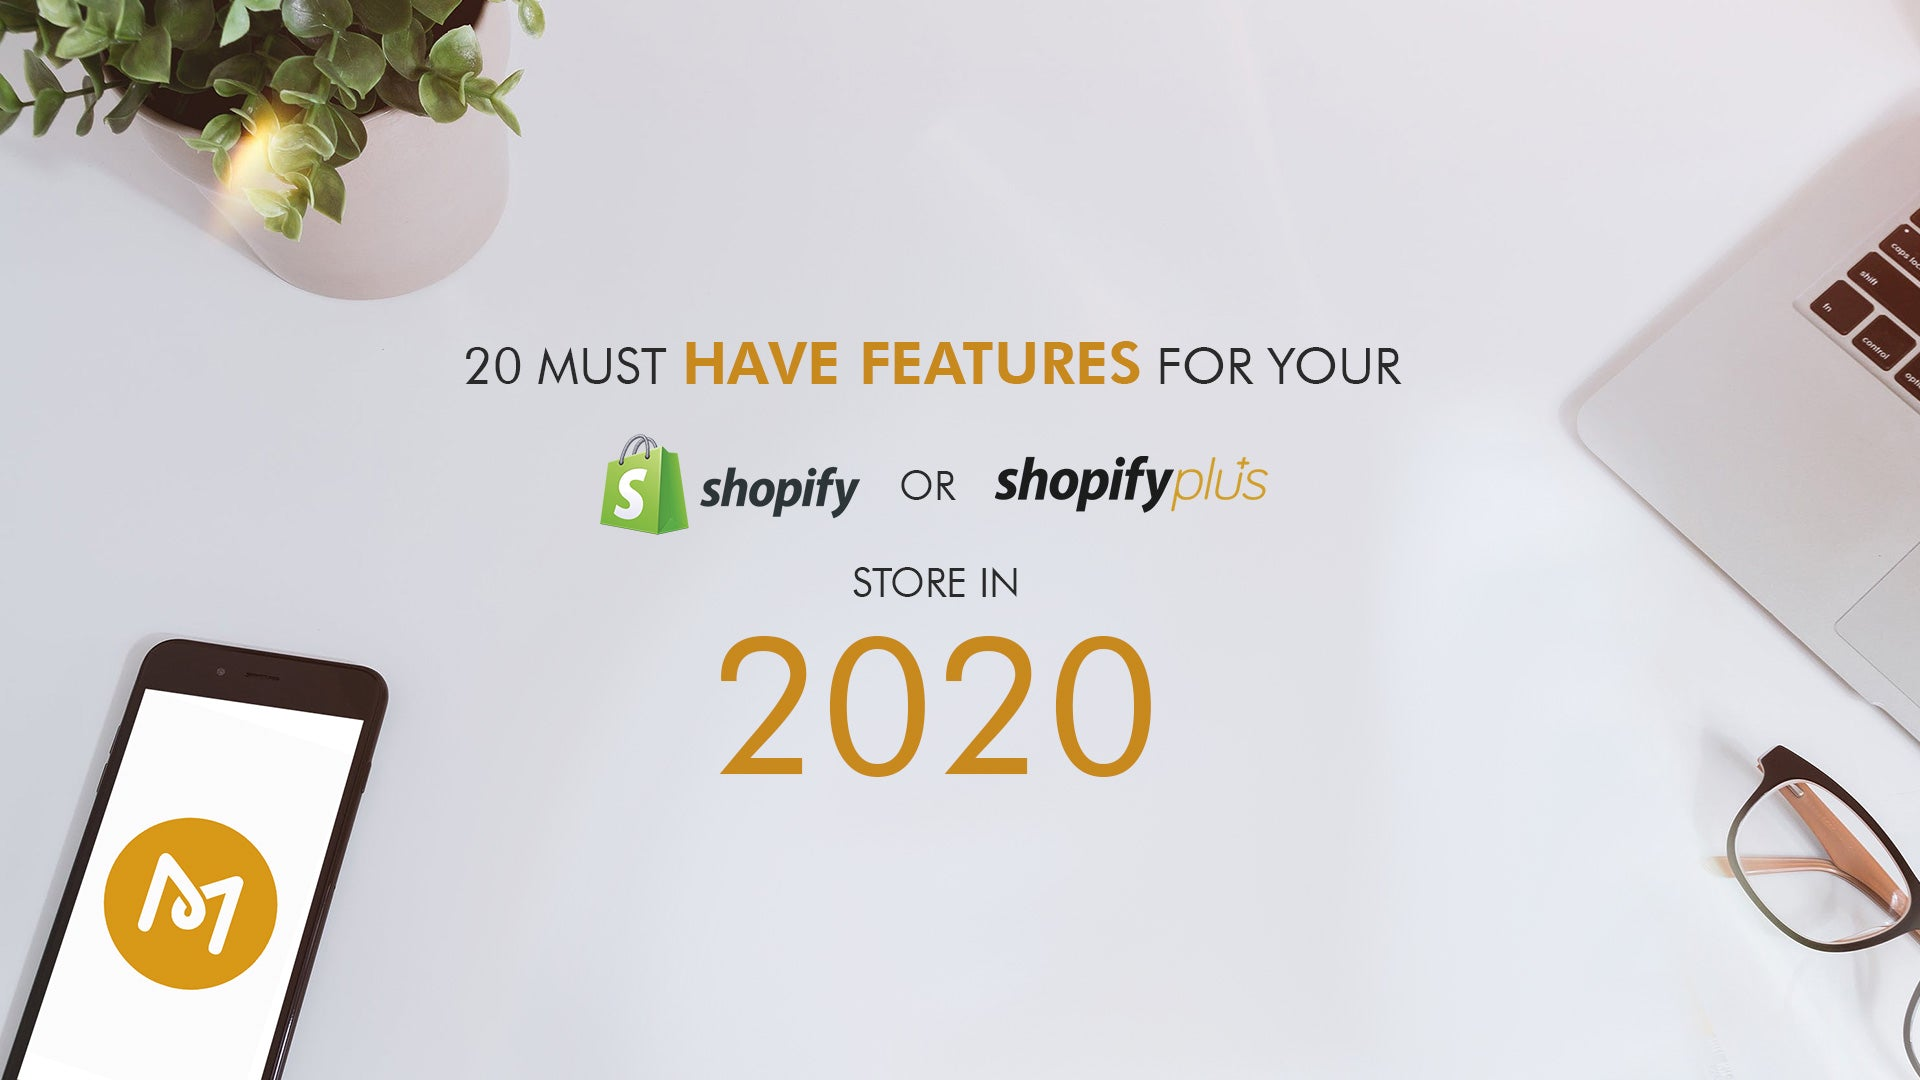 20 Must-Have Features for Your Shopify Store in 2020